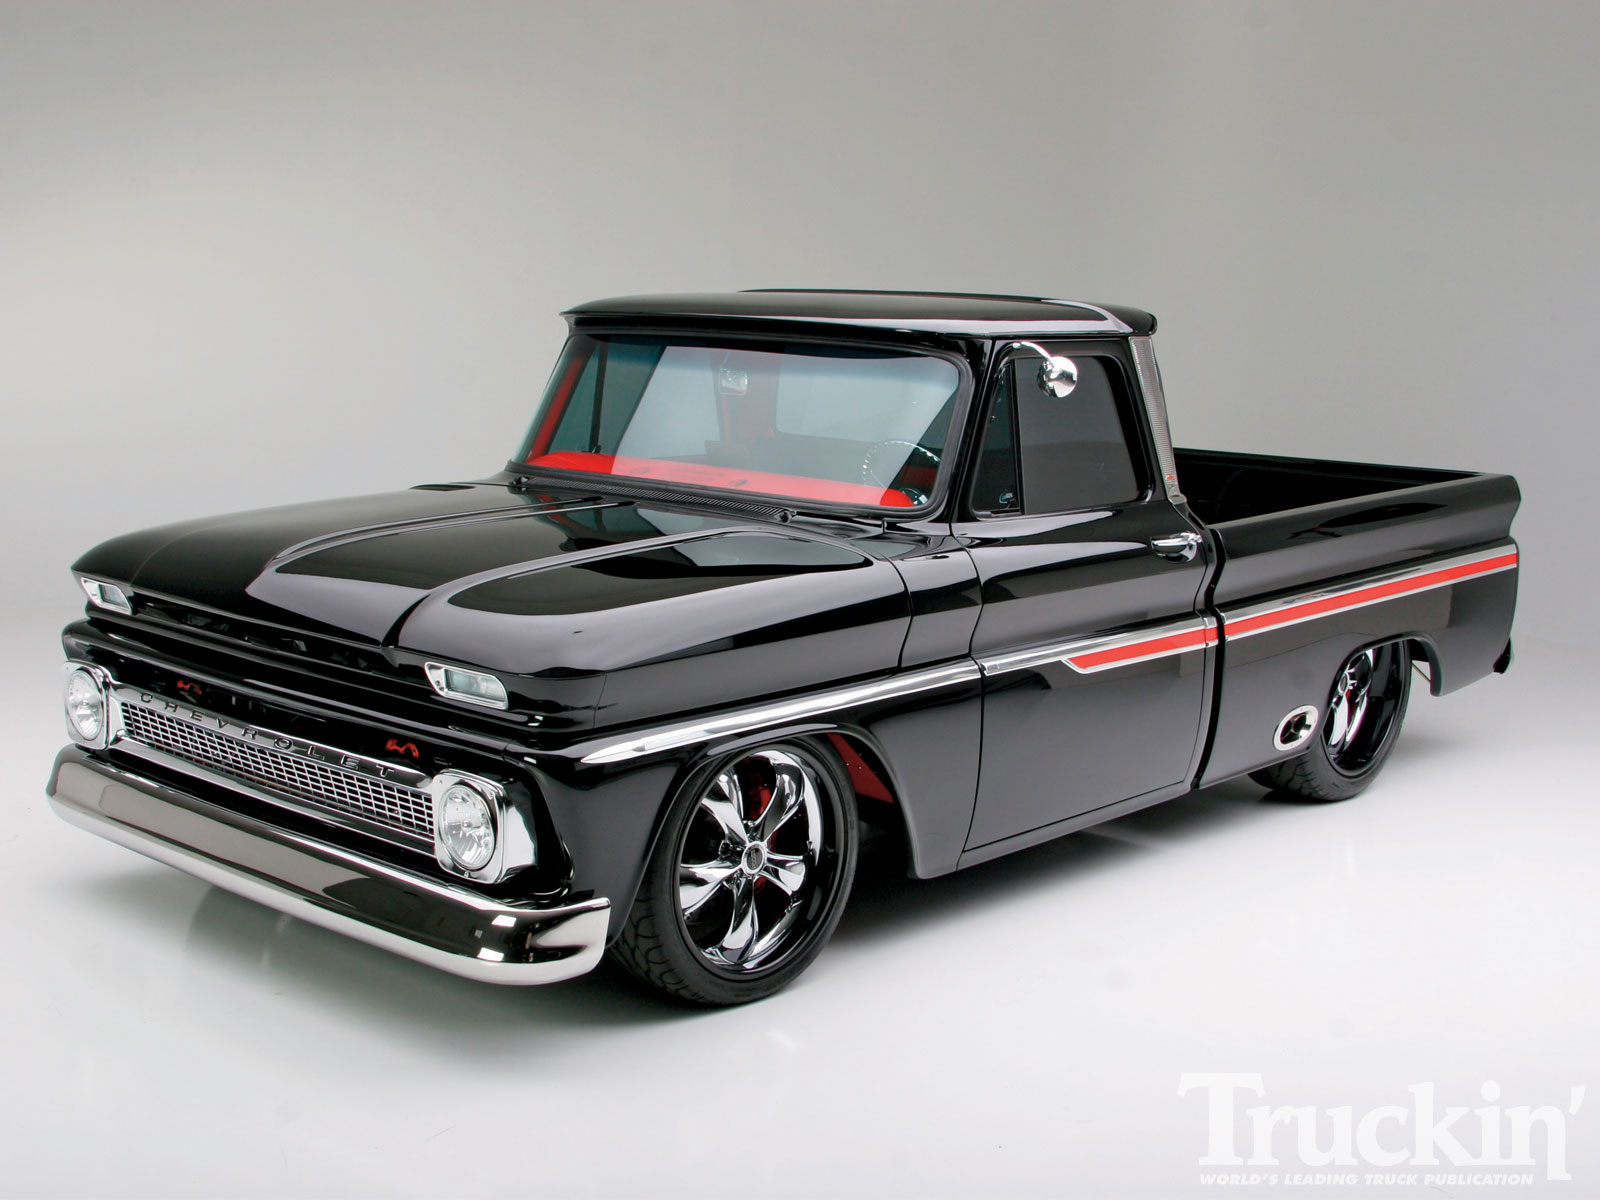 Chevy Truck Wallpapers 5044 Hd Wallpapers in Cars   Imagescicom 1600x1200